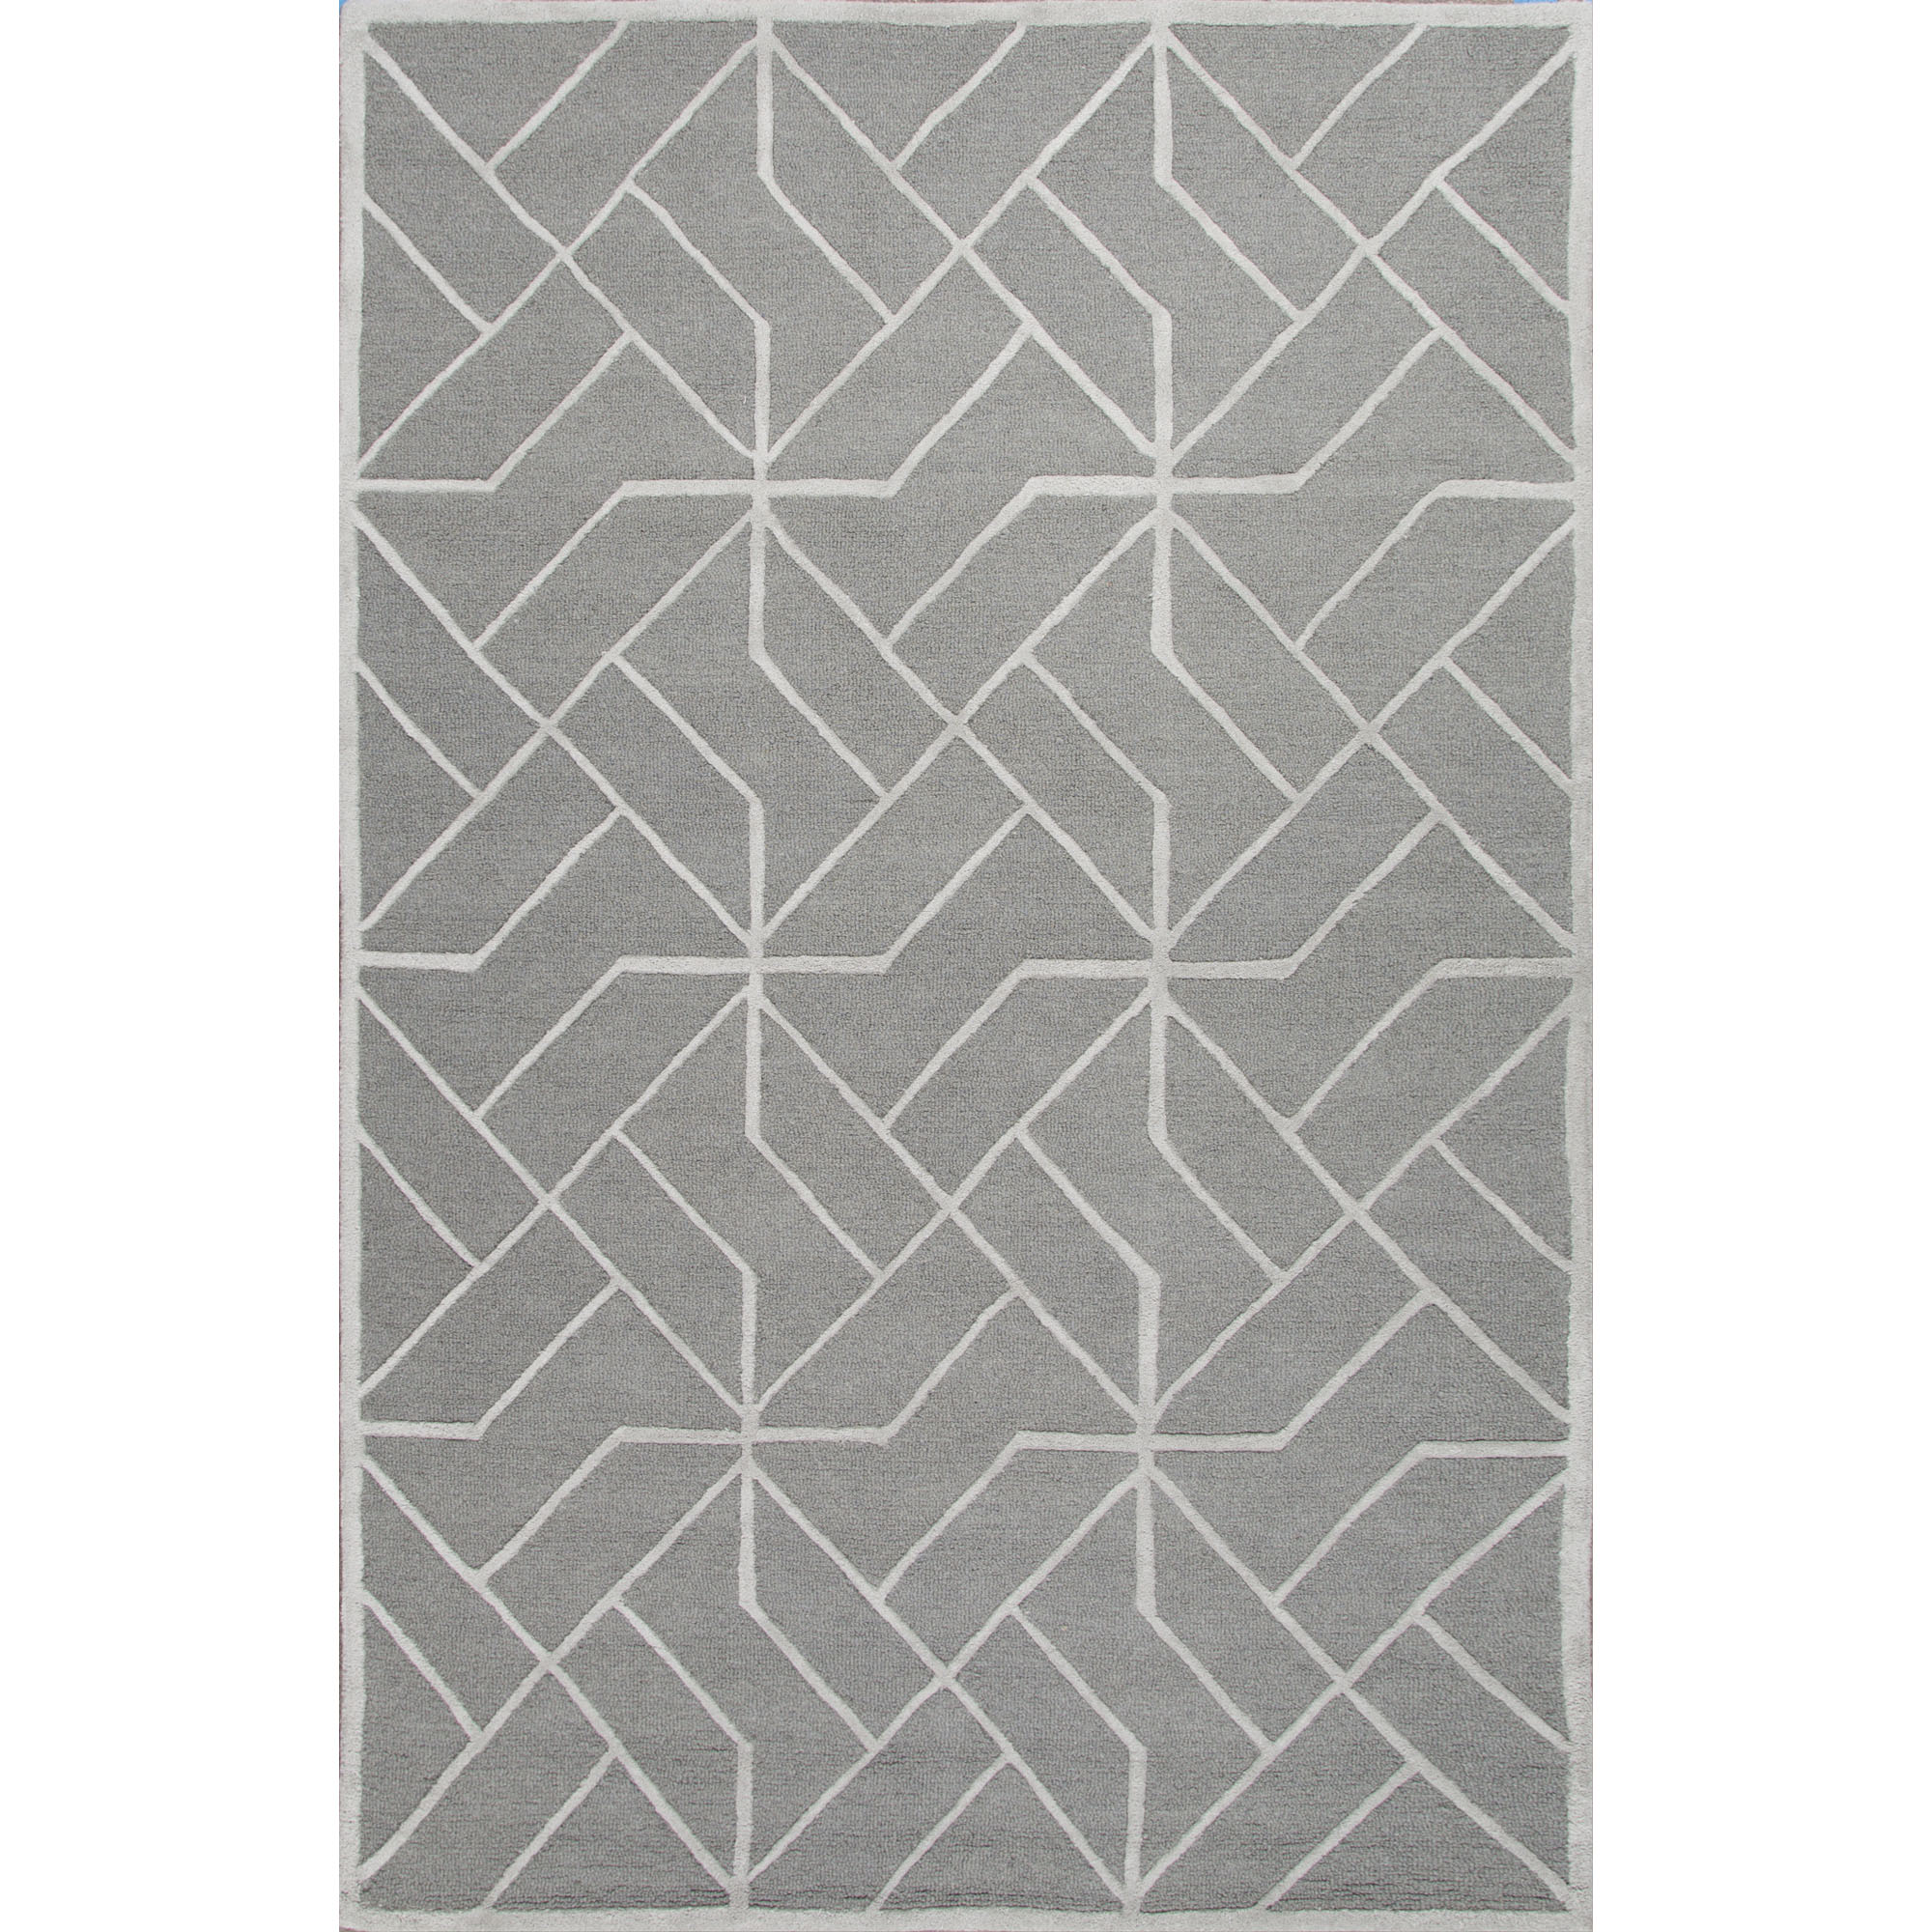 JAIPUR Rugs Lounge 5 x 8 Rug - Item Number: RUG110481